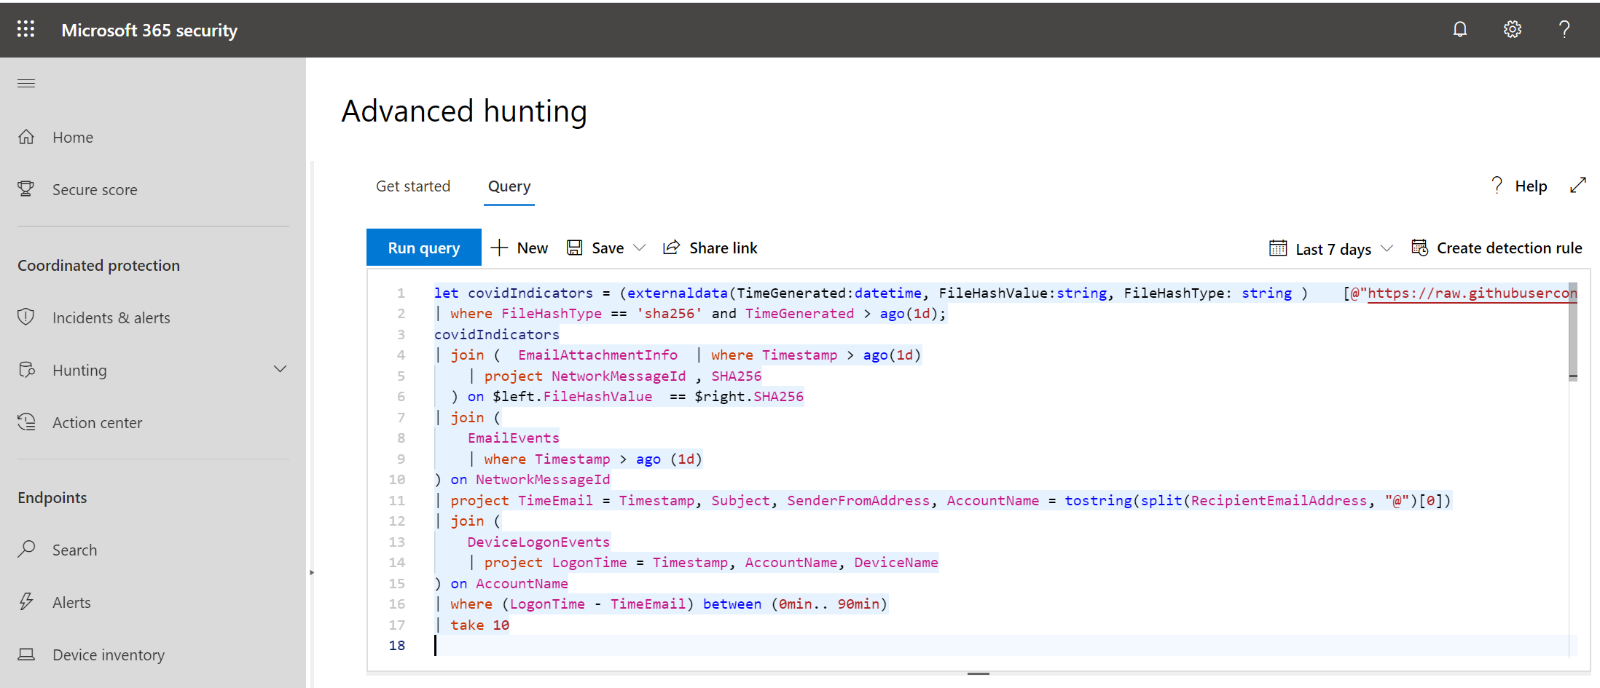 Advanced hunting in Microsoft 365 security.